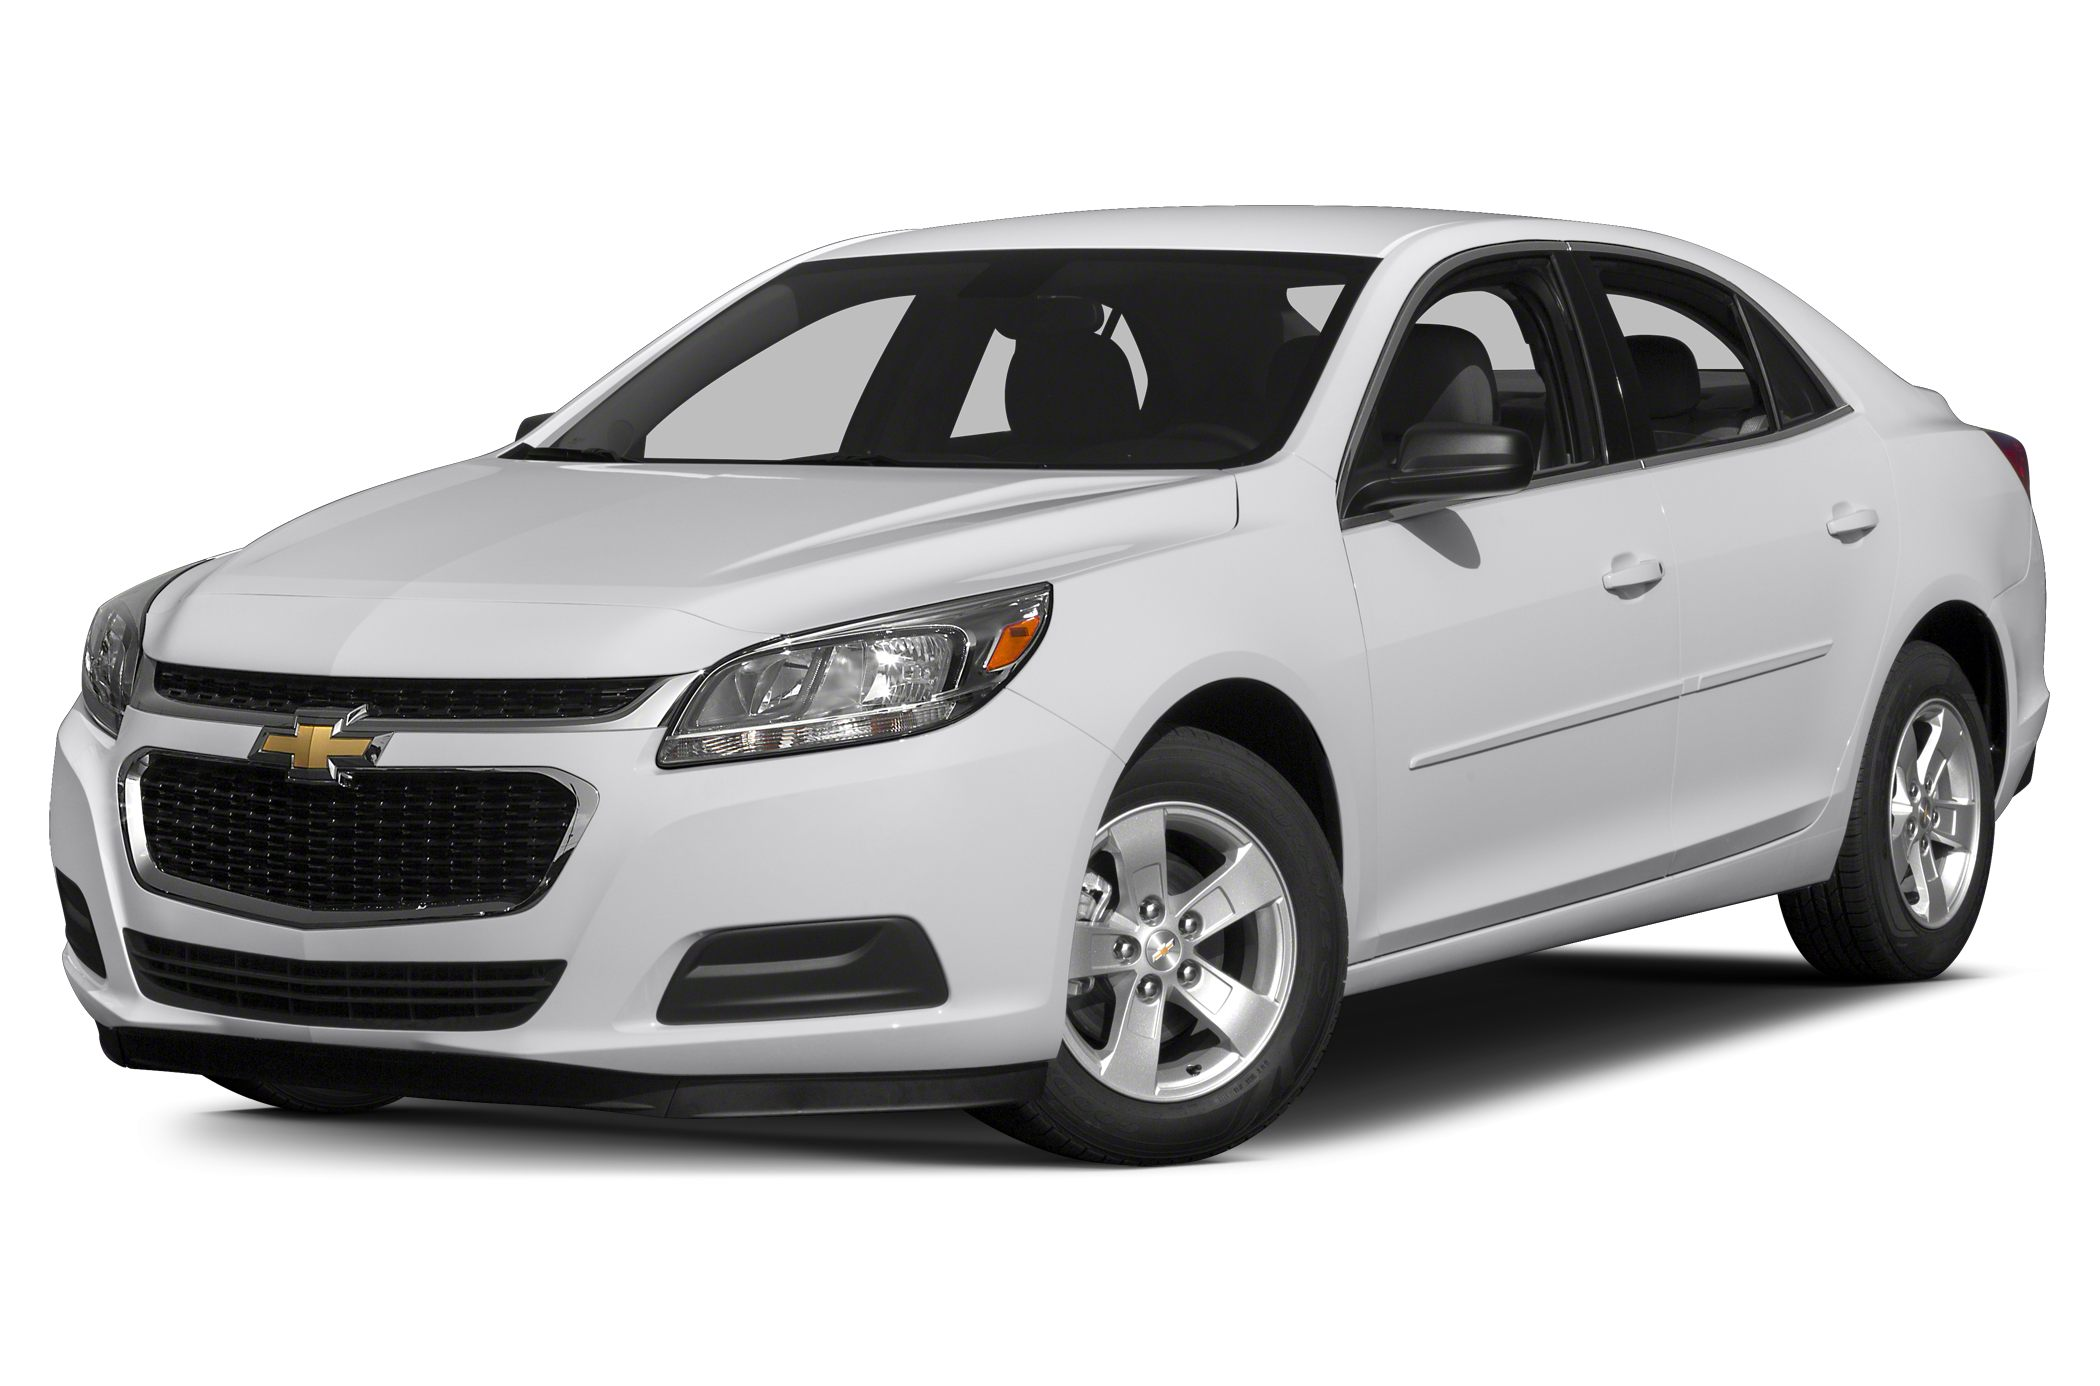 2015 Chevrolet Malibu 1LT Sedan for sale in Andover for $26,380 with 0 miles